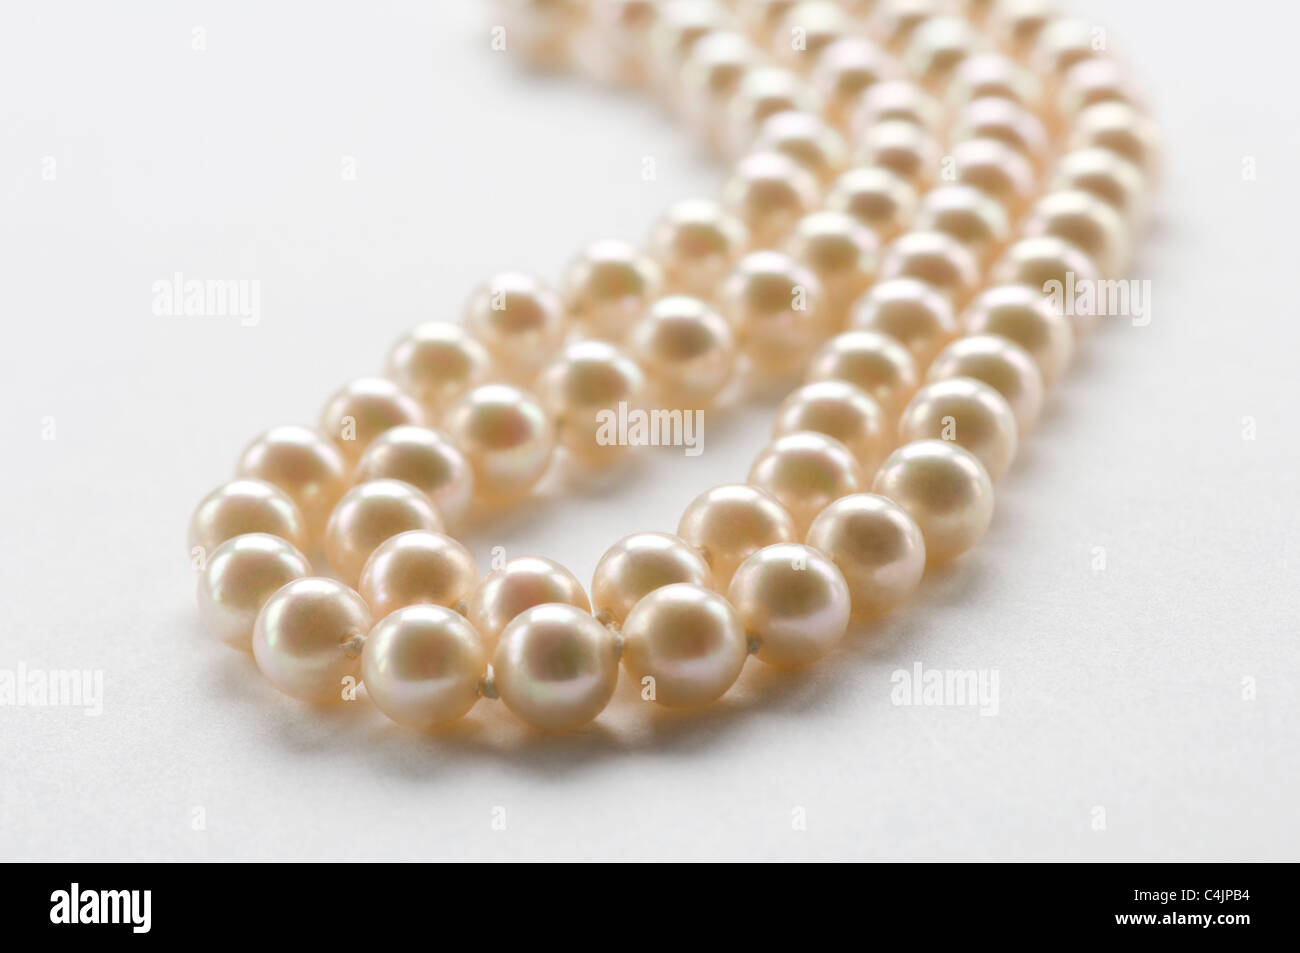 Pearl necklace on white - Stock Image